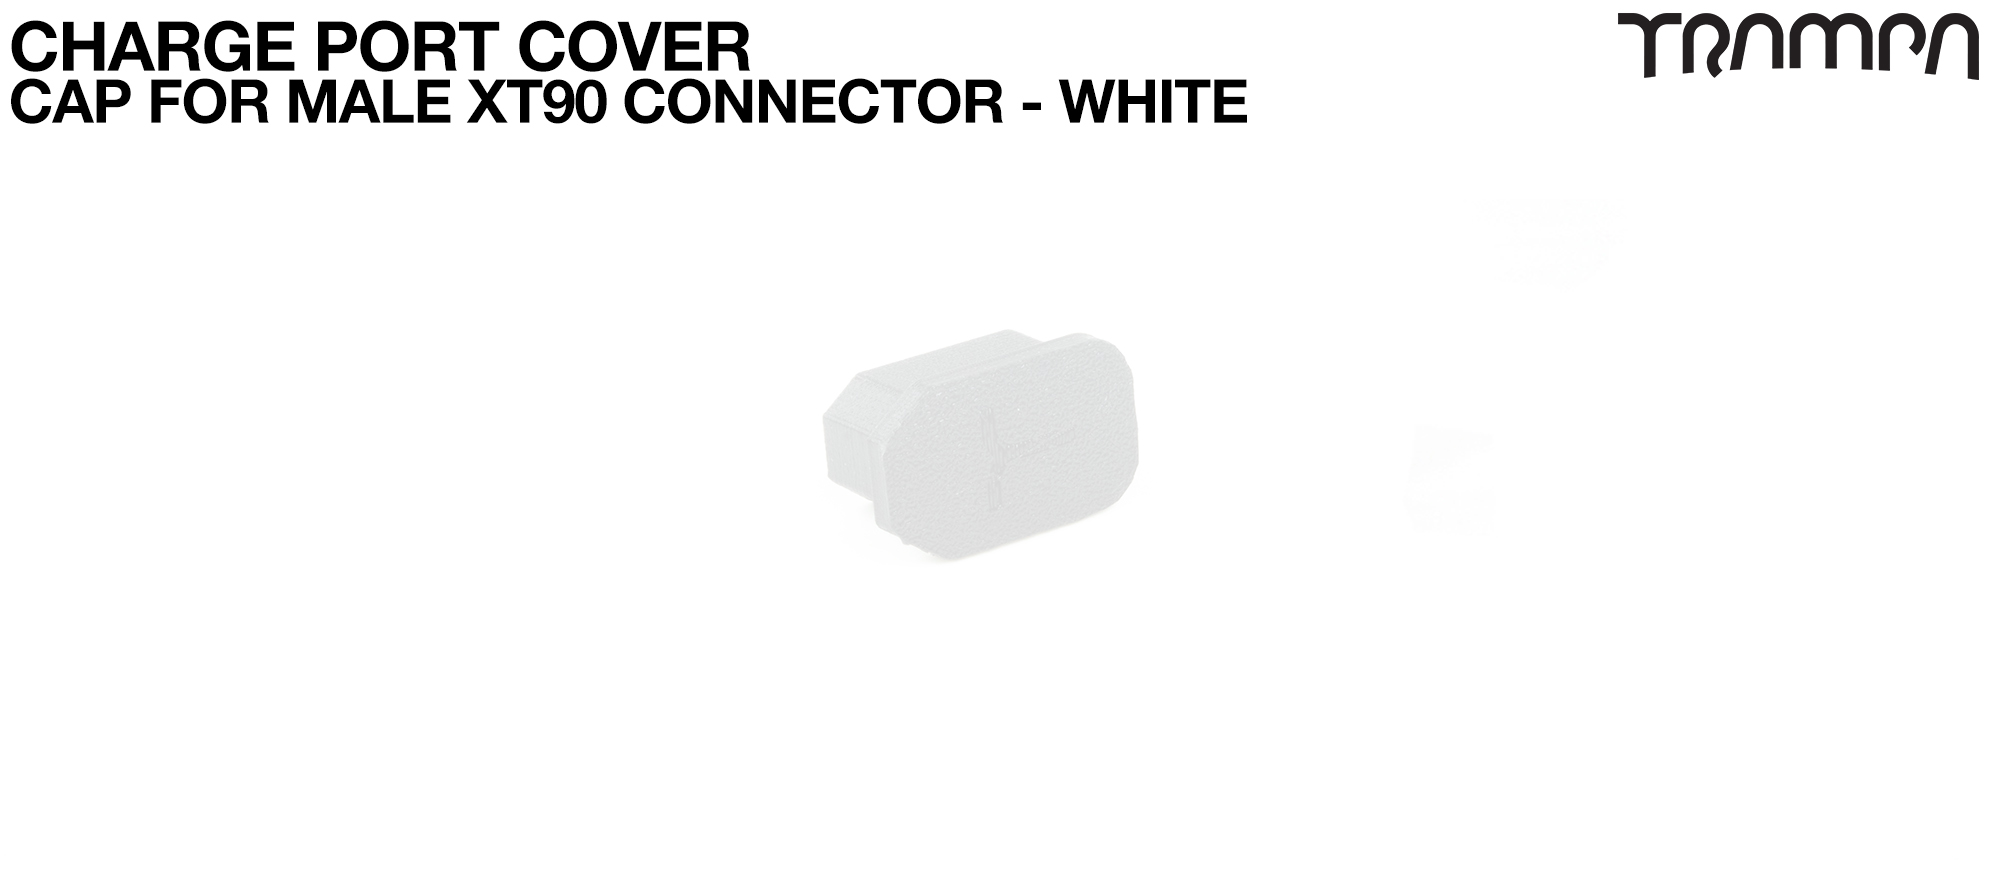 I'd like a WHITE XT90 Charge Port Cover